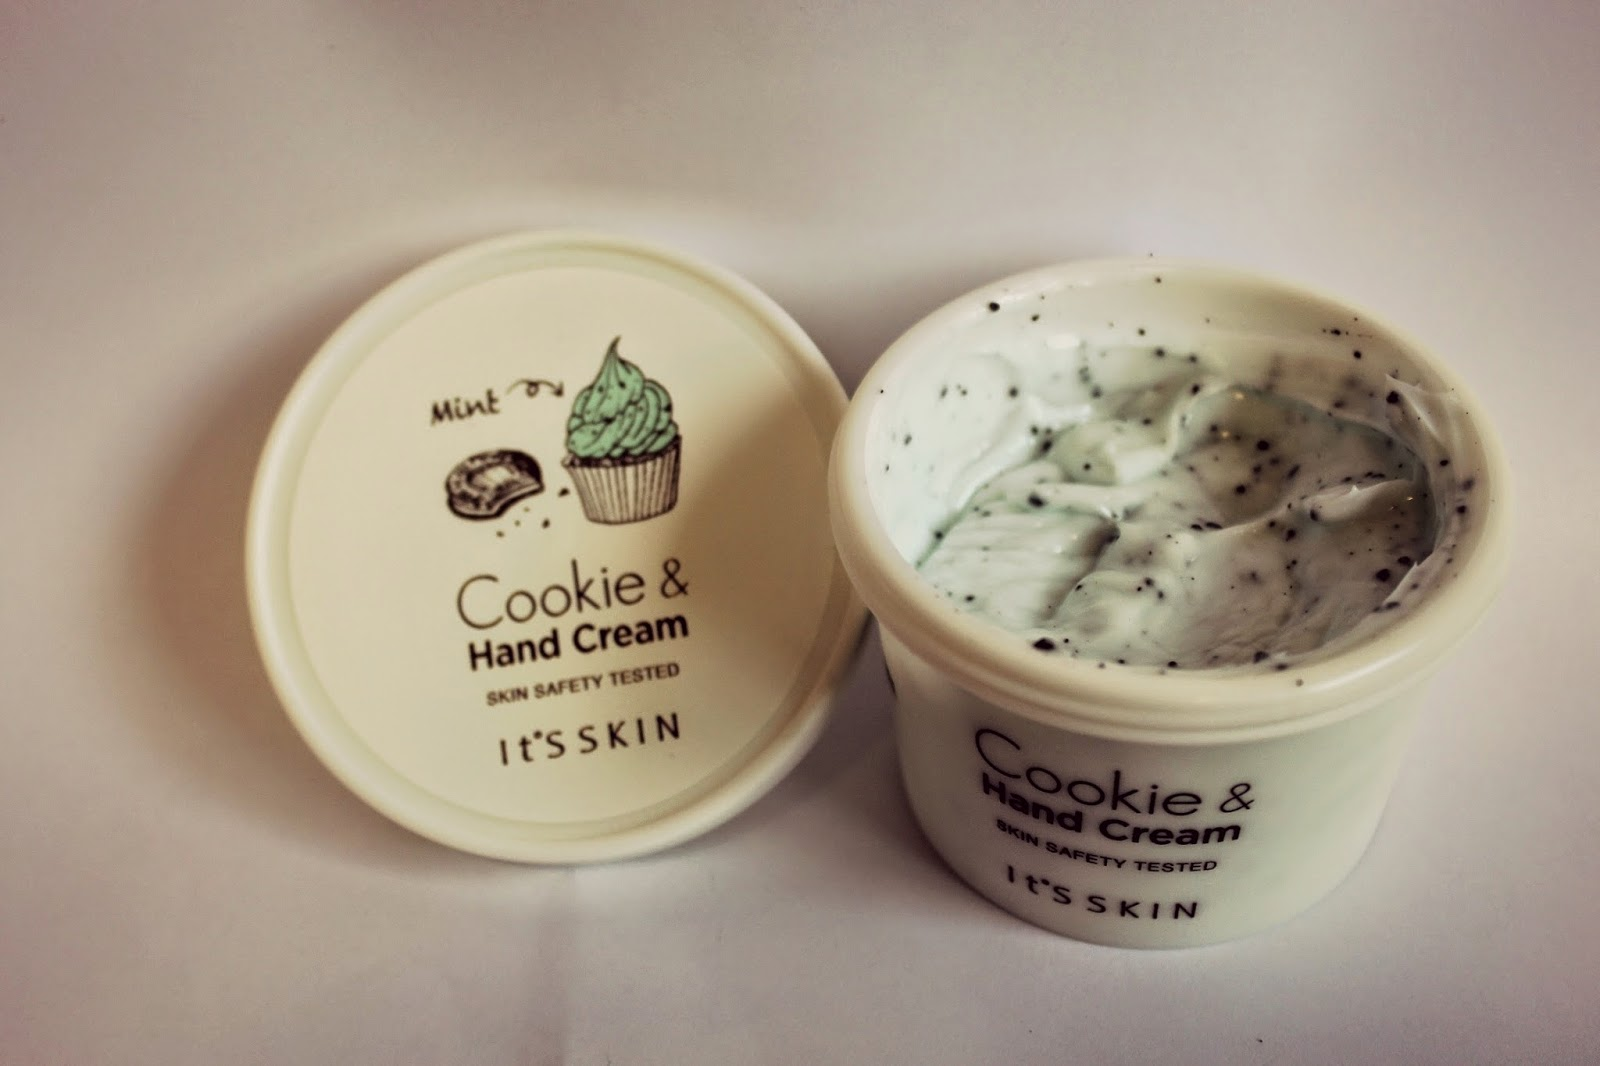 Mint Choc Chip hand cream